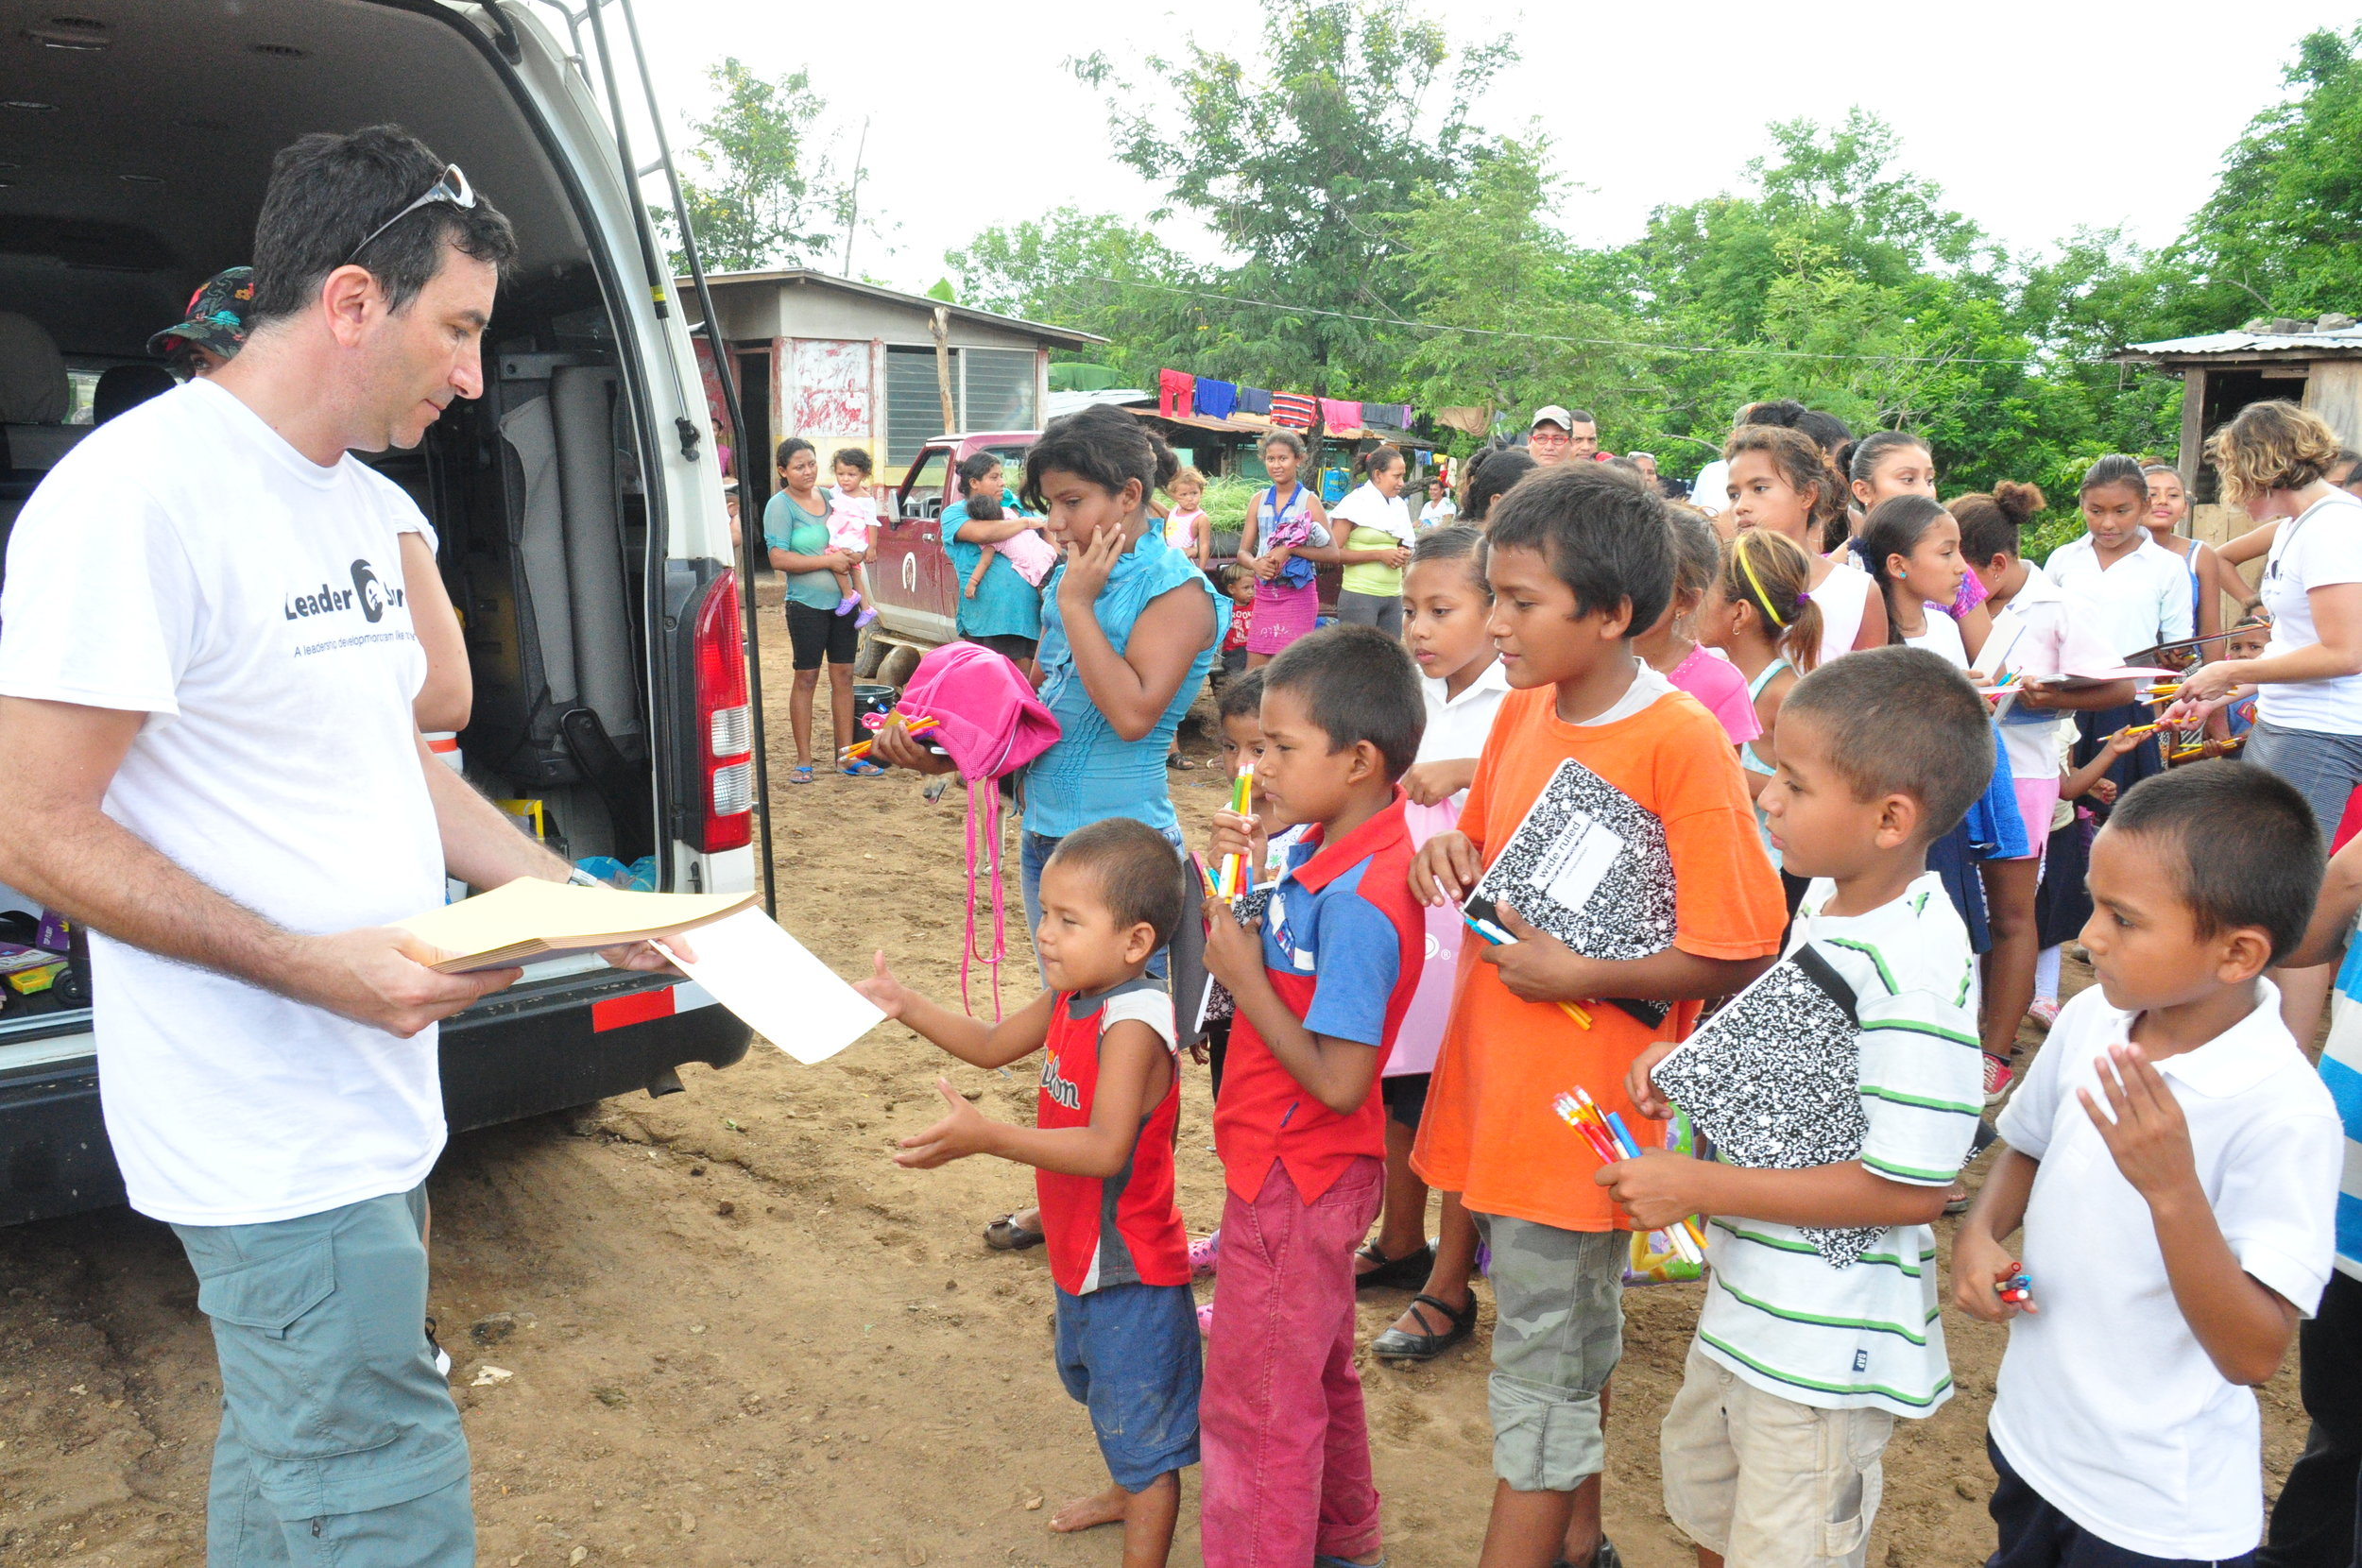 Handing out school supplies to children in need